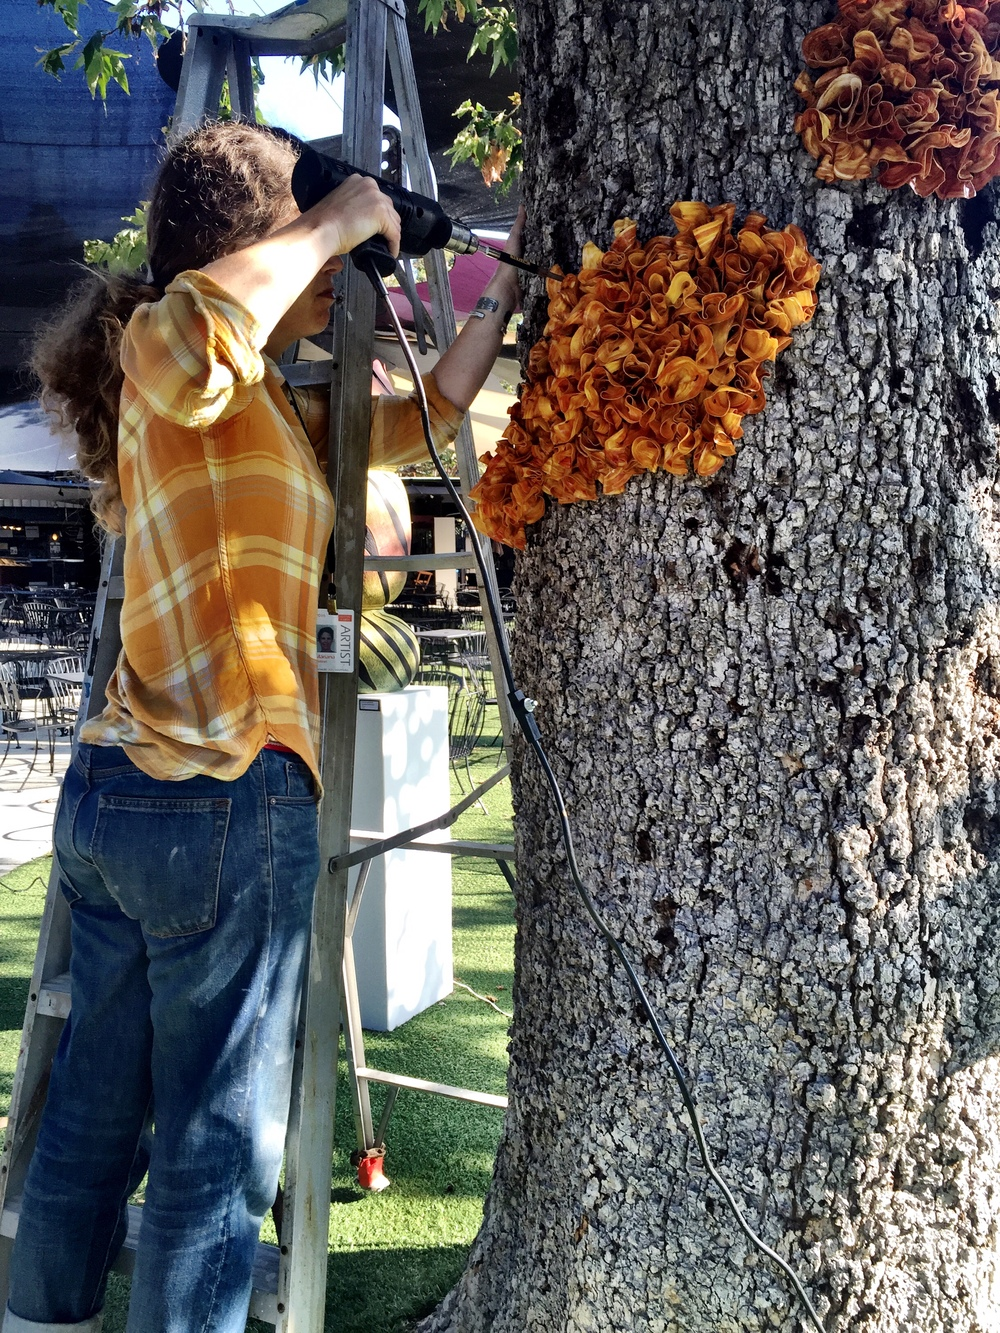 Melted 'Starbucks' coffee cup lids are melted and warped to create this orange 'Fungus' for the Festival of Arts, Laguna Beach, CA. Seen here, Mariana installing the growing 'Fungus'.